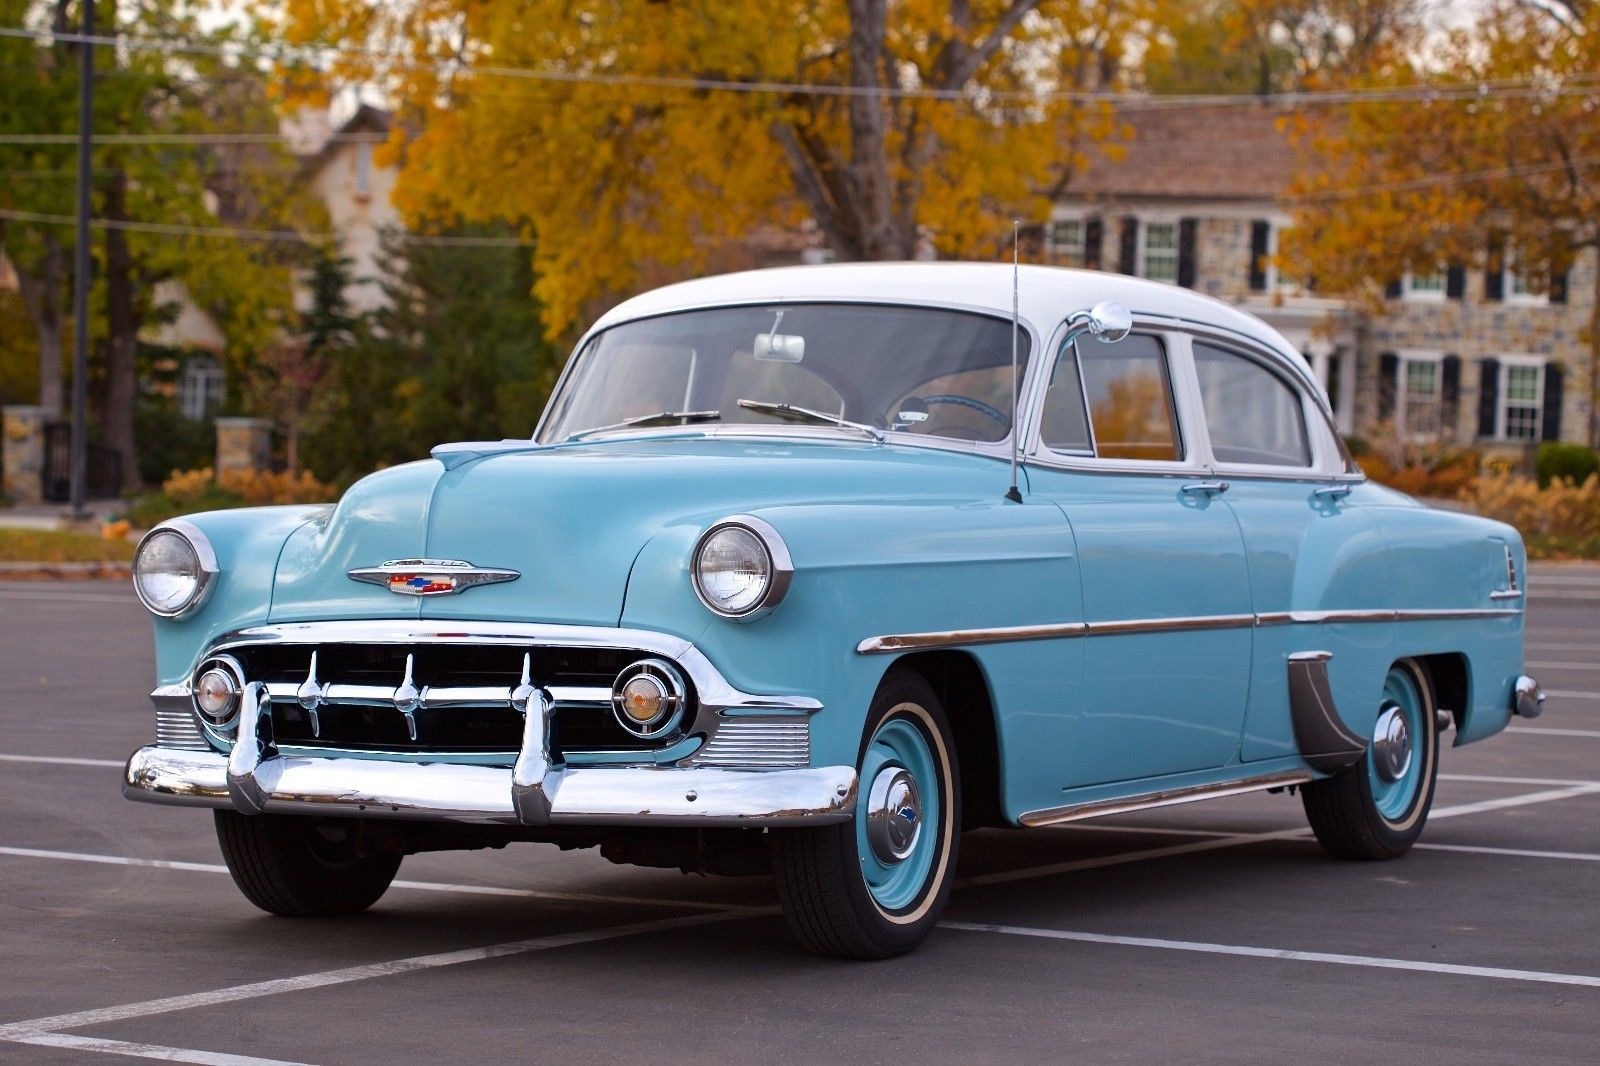 Awesome awesome 1953 chevrolet bel air150210 210 fully restored awesome great 1953 chevrolet bel 210 fully restored show quality 1953 chevy chevrolet bel air 210 150 sedan hot rod 2018 sciox Choice Image